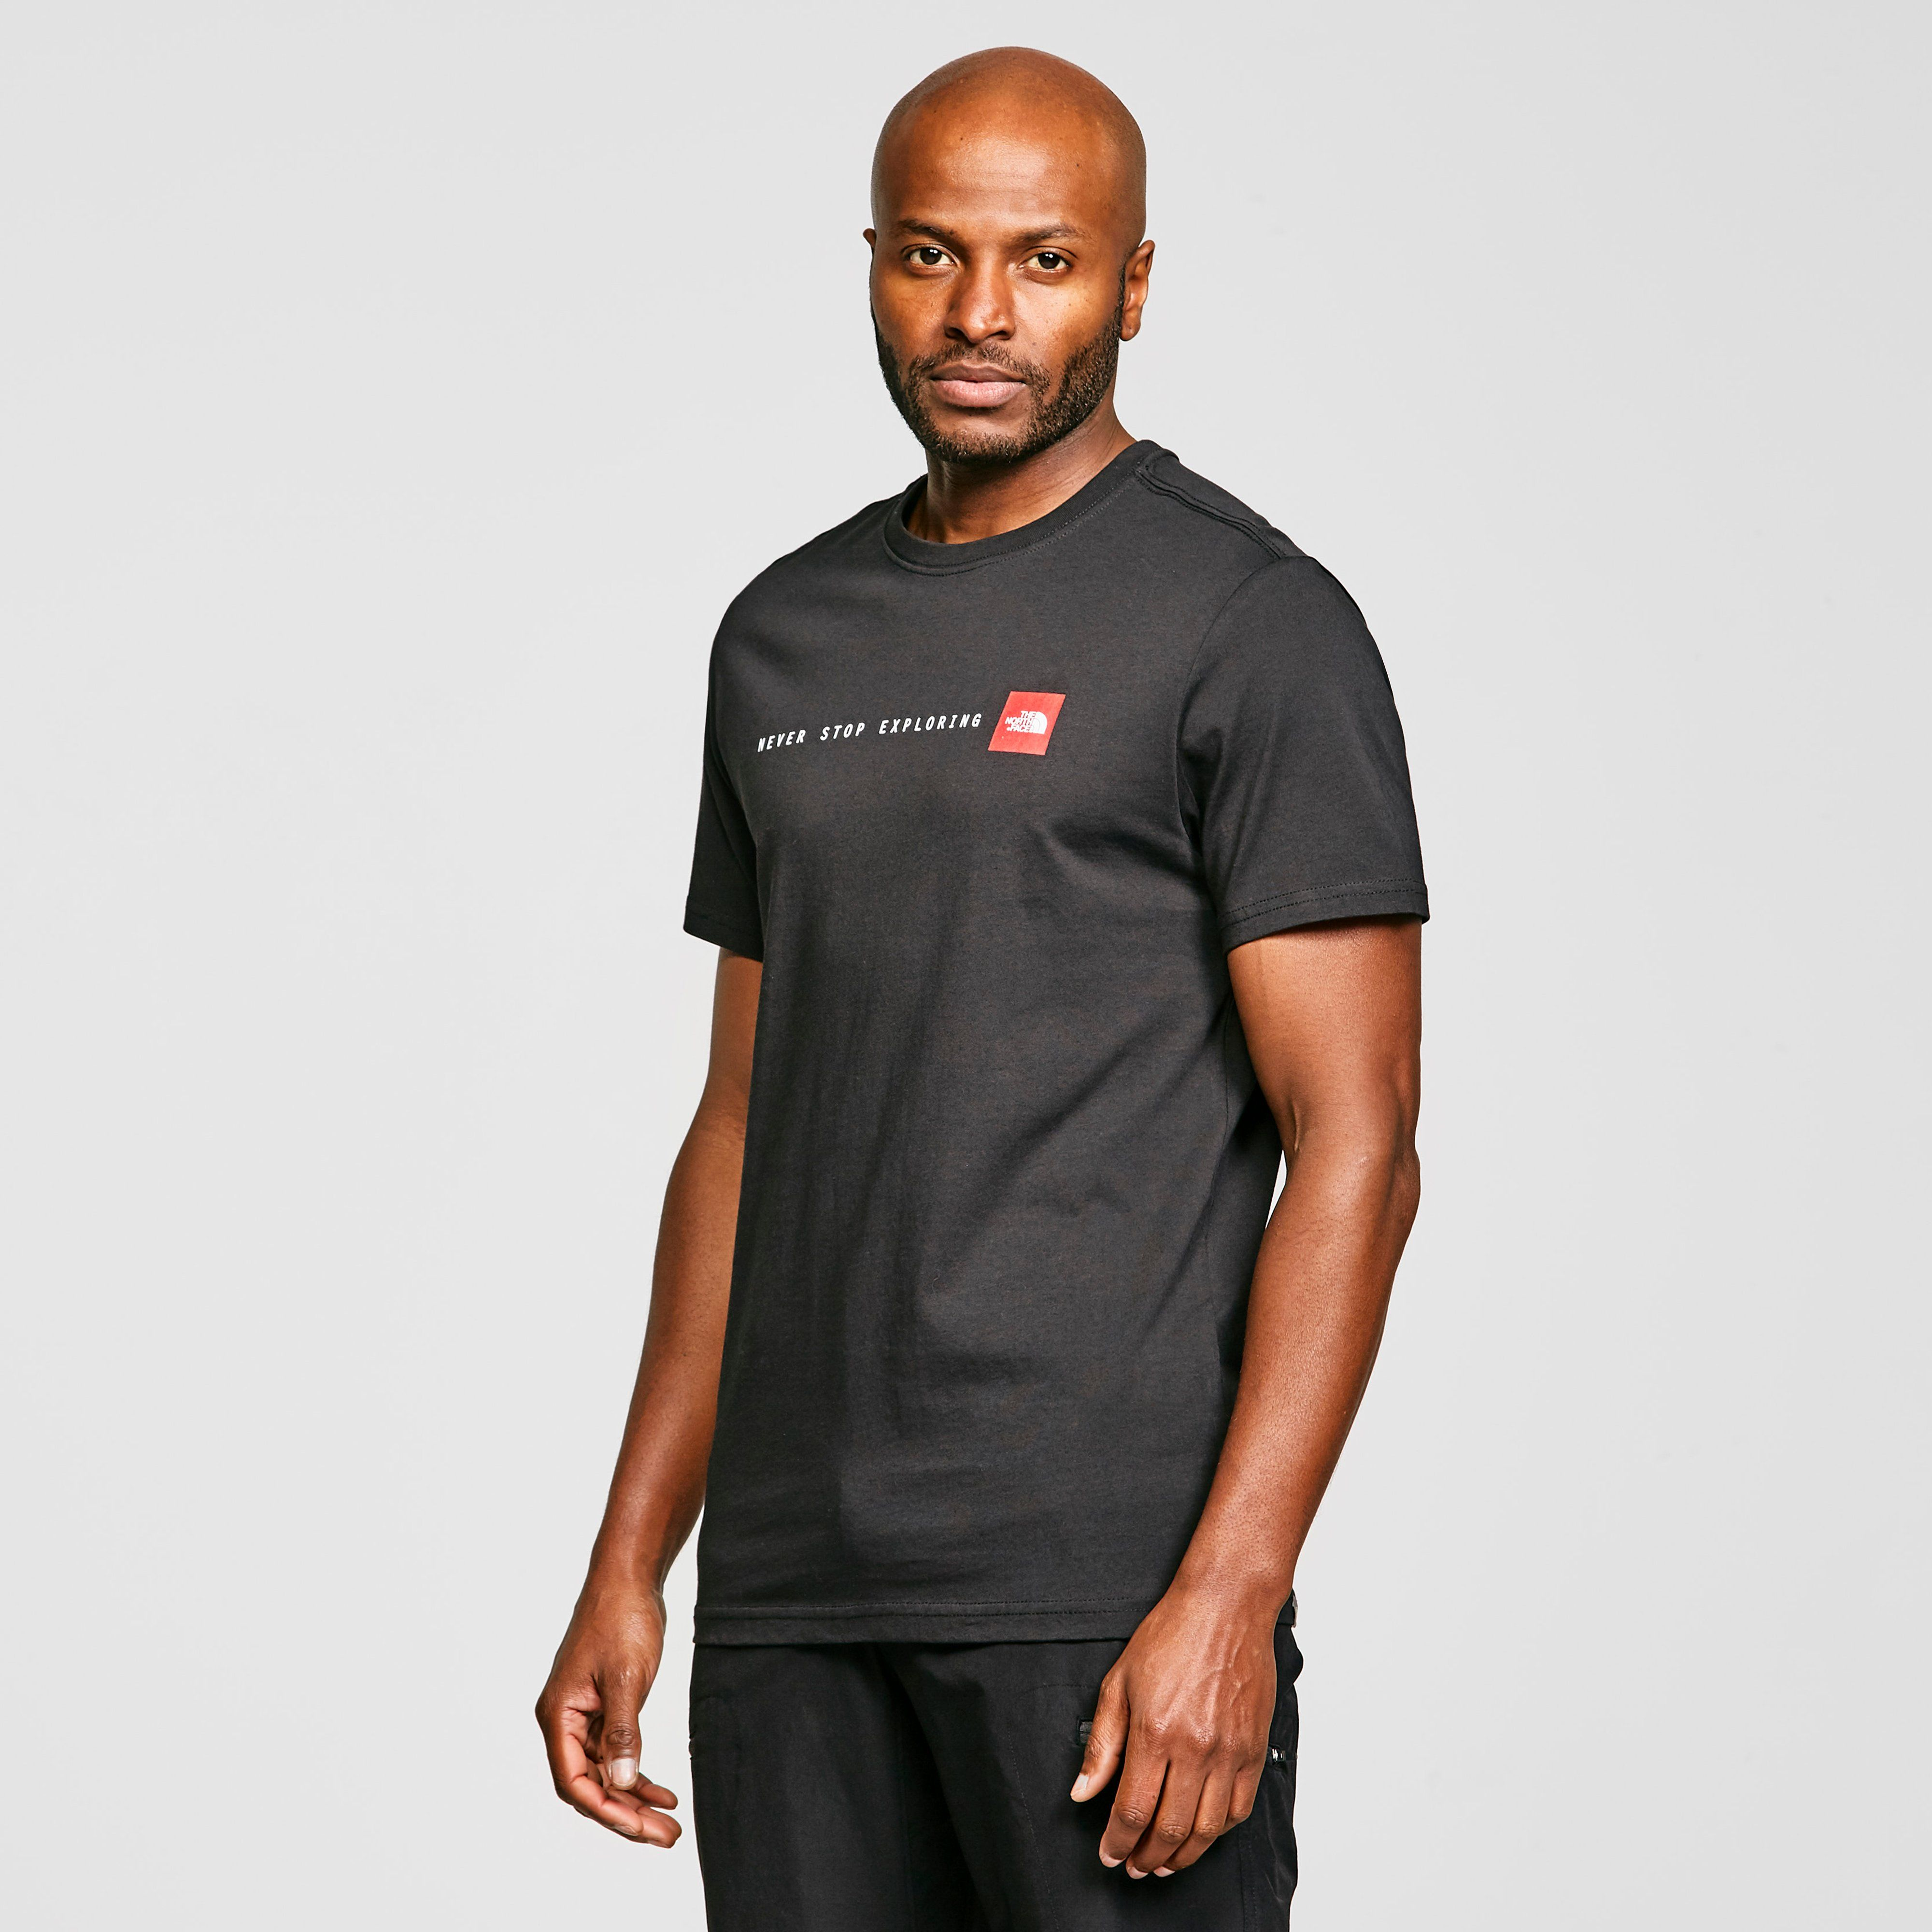 THE NORTH FACE Men's Never Stop Exploring Short Sleeve T-Shirt